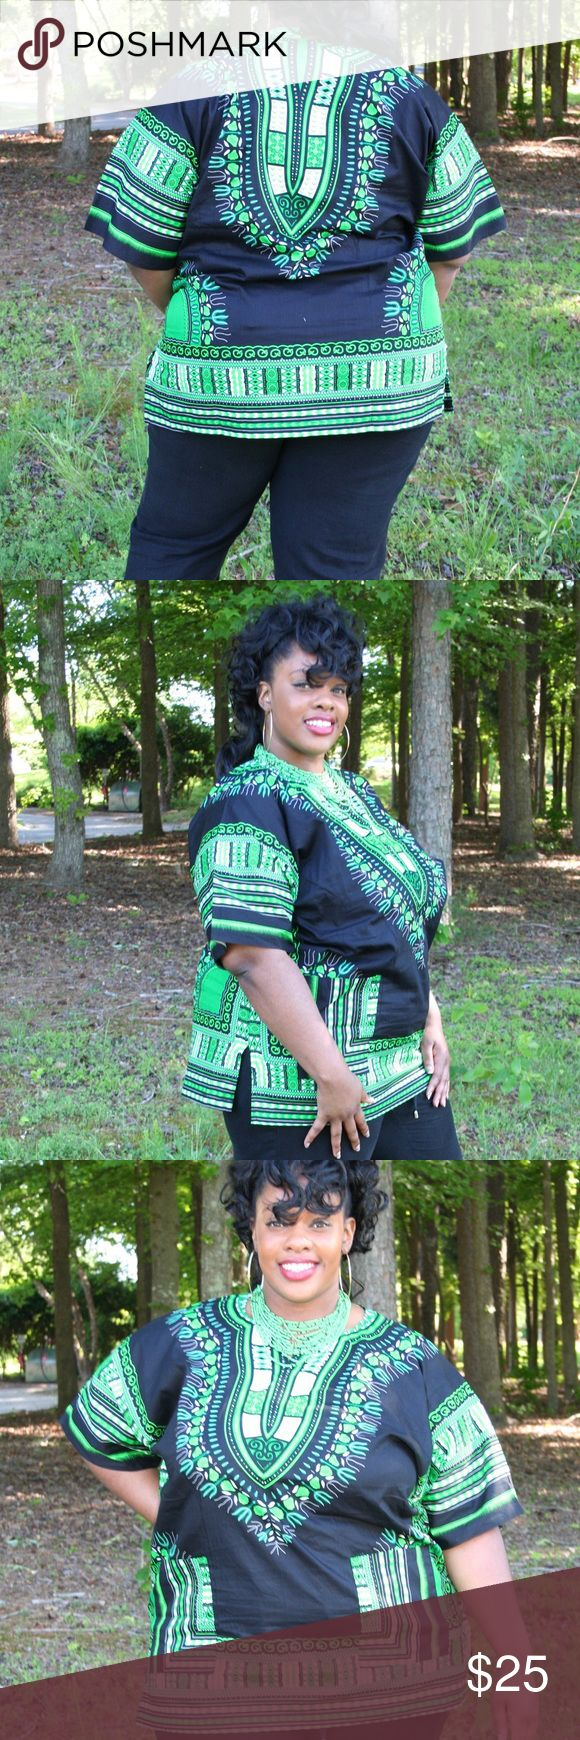 Plus Size Dashiki Shirt Unisex Black and green Dashiki shirt. This shirt is available in size 16-18, 18-20 and 22-24  Features 2 front pockets and 2 side slits for style and comfort. It is made with 100% cotton.   This Dashiki Shirt is available in Orange, Green, Purple, Yellow and Blue. Tops Tunics